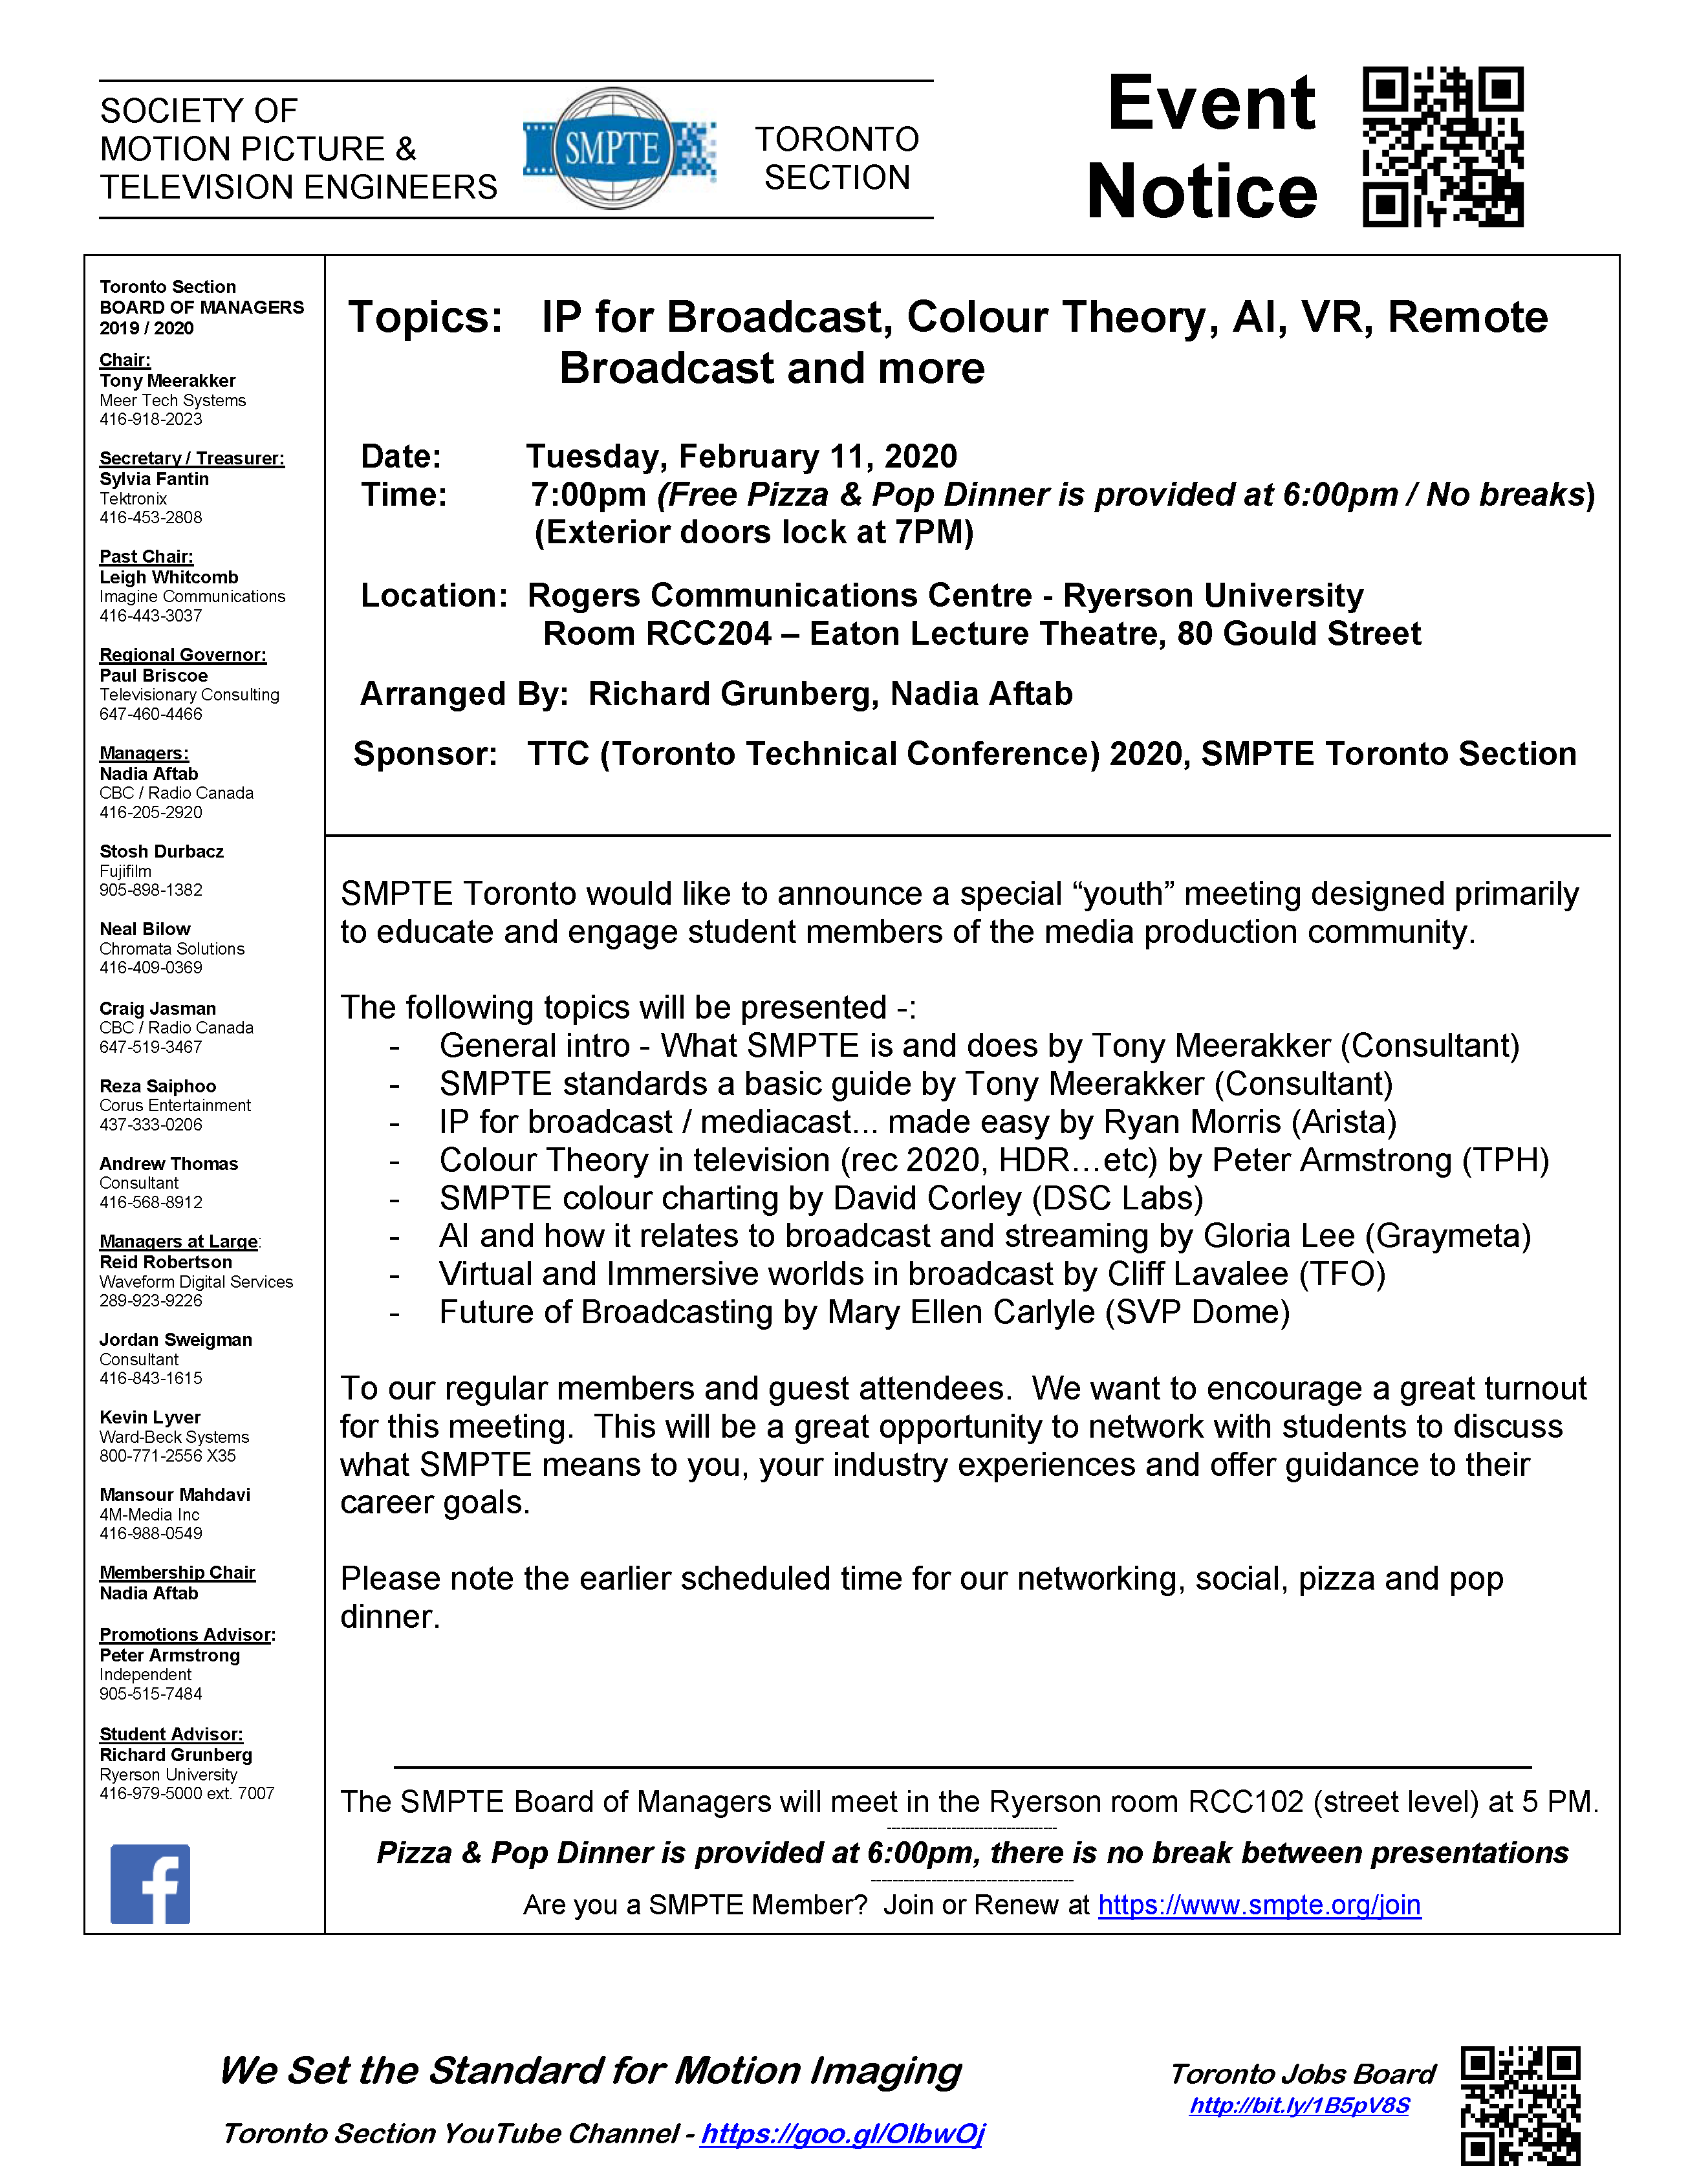 SMPTE Meeting Notice Feb 11-2020 v2